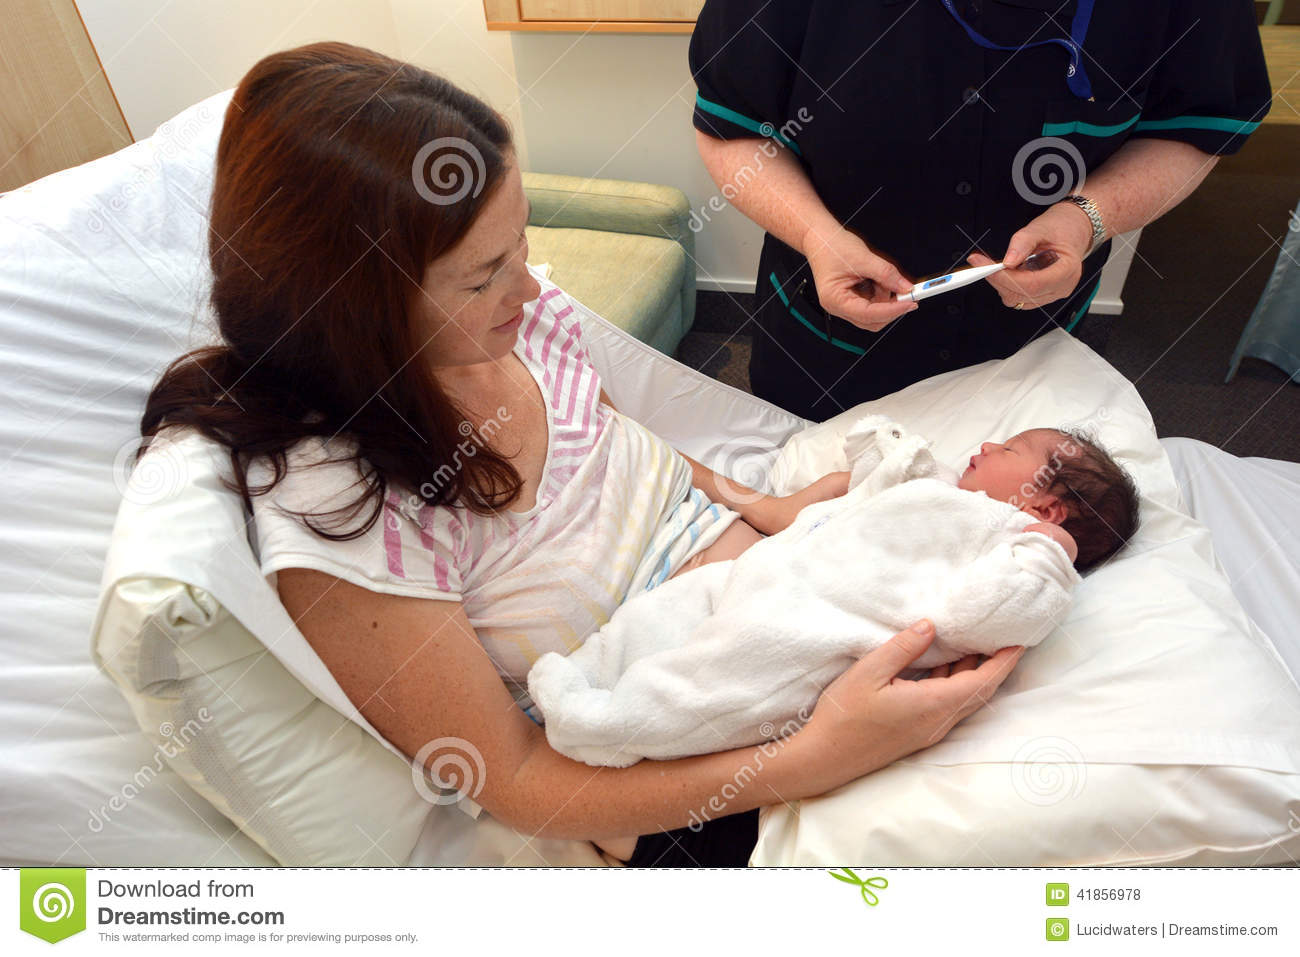 Midwife checking newborn temperature